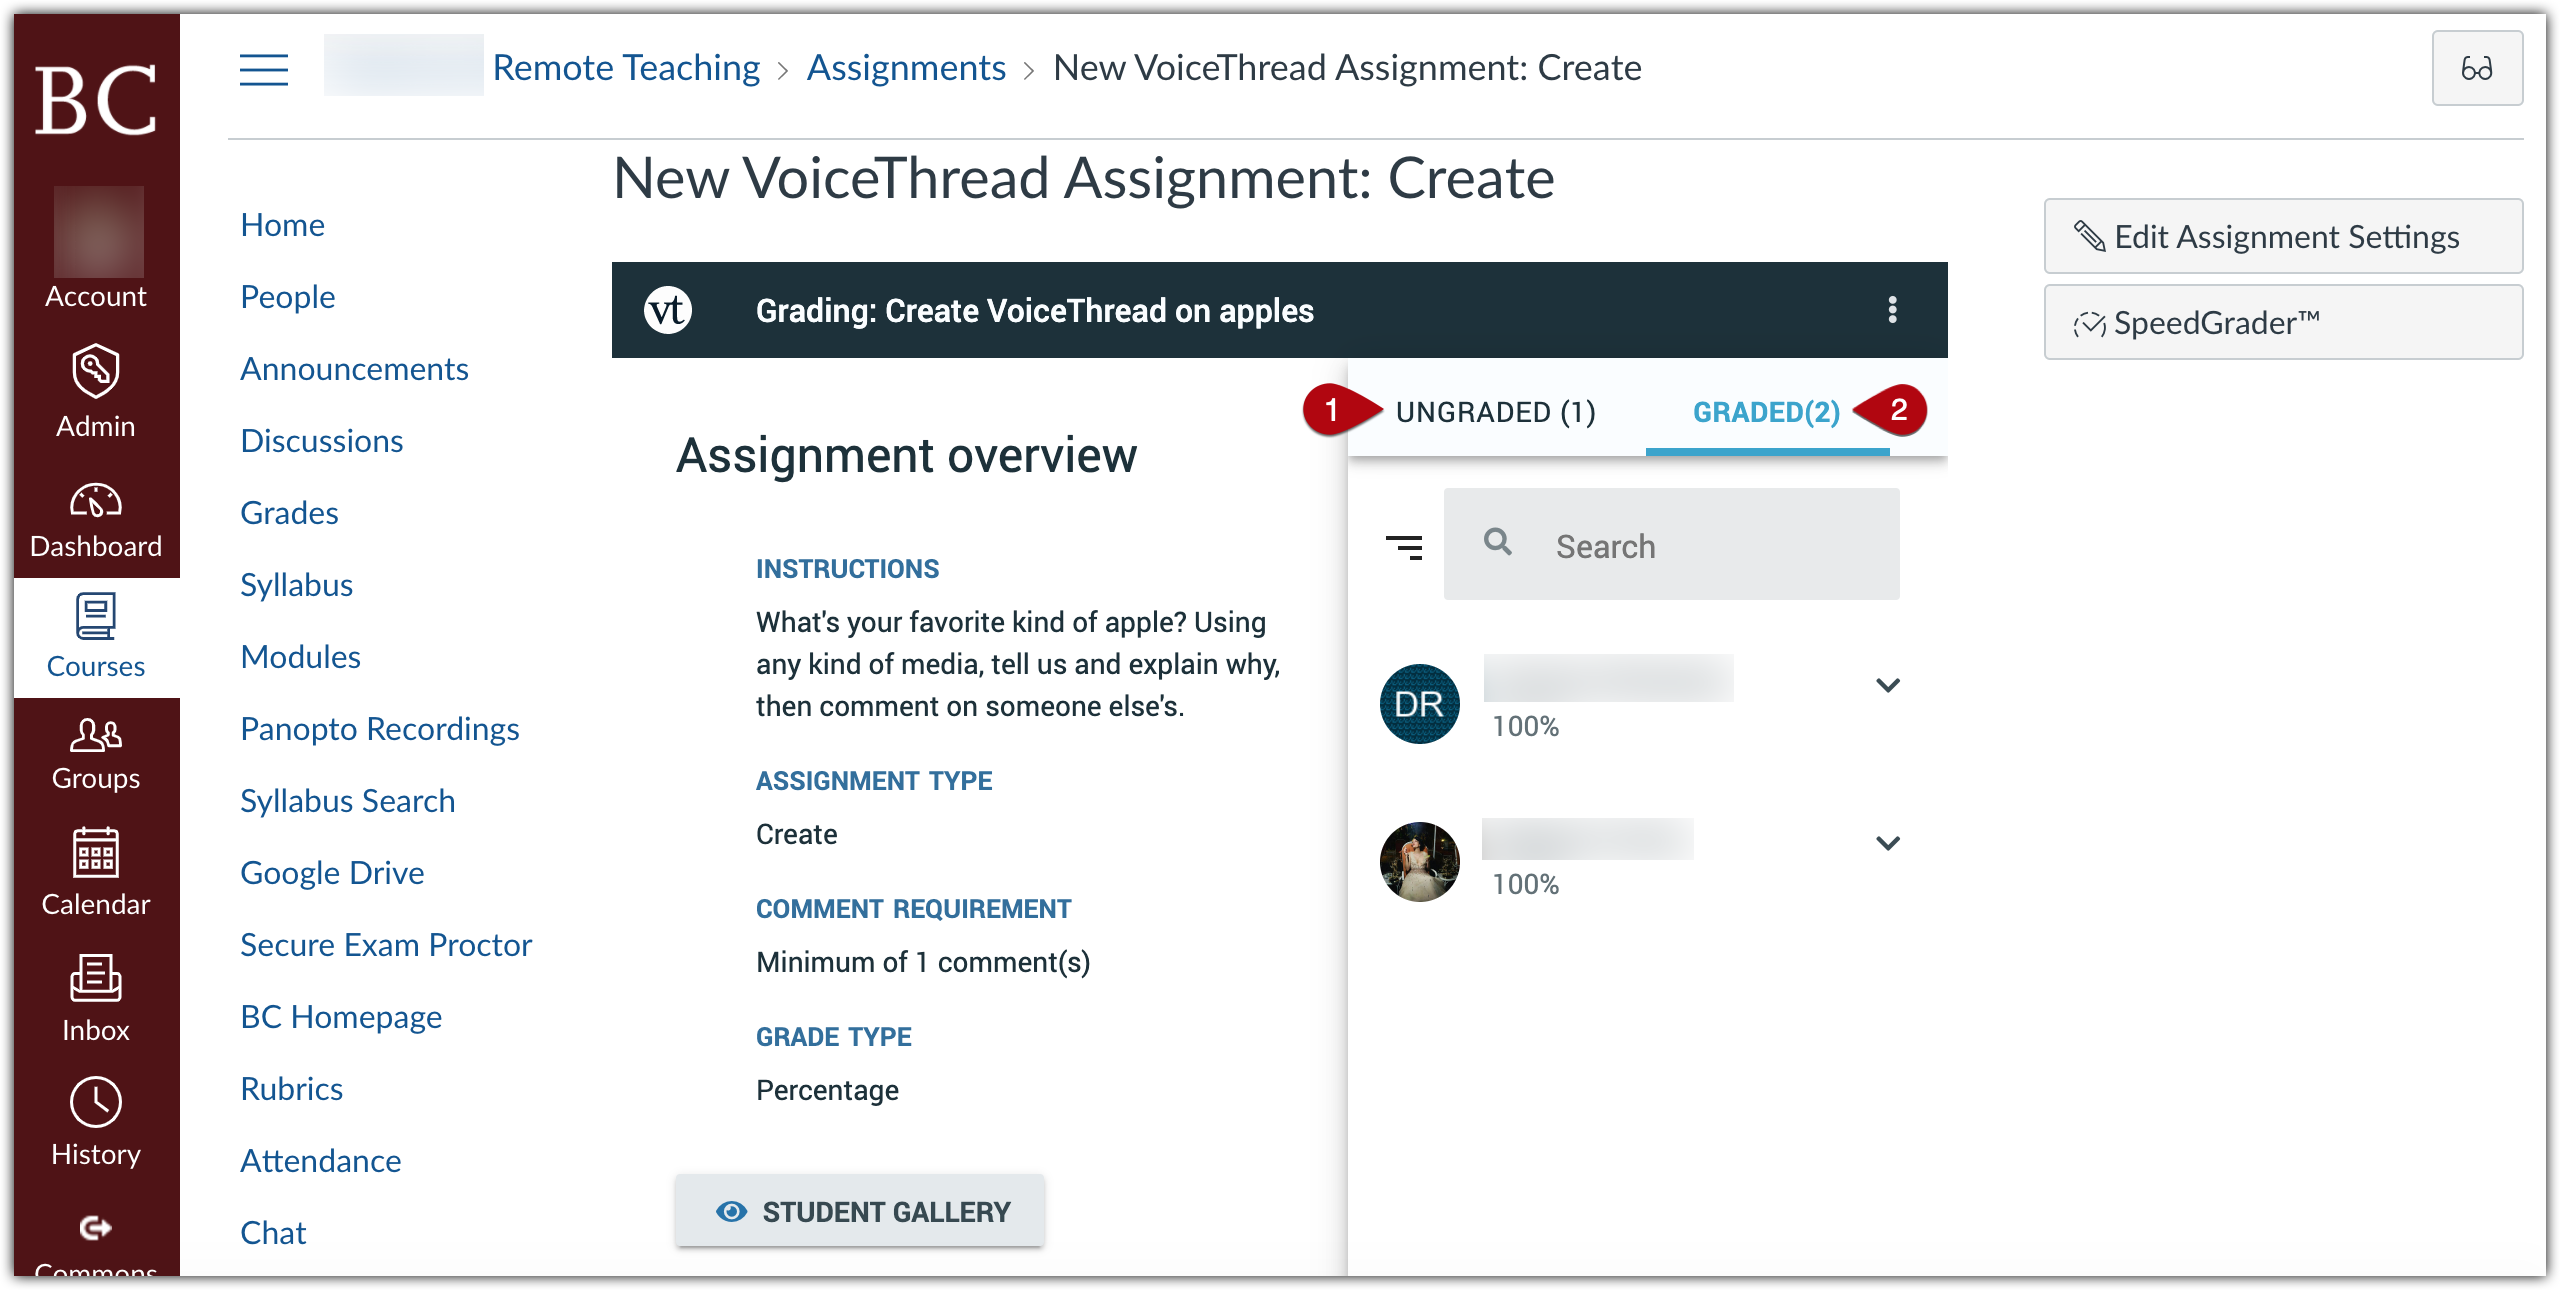 """Voicethread grading interface in Canvas. """"Assignment Overview"""" appears on the left, including assignment instructions, type, comment requiretments, and grade type. On the righthand side, student submissions are divided into an """"ungraded"""" tab and a """"graded"""" tab."""